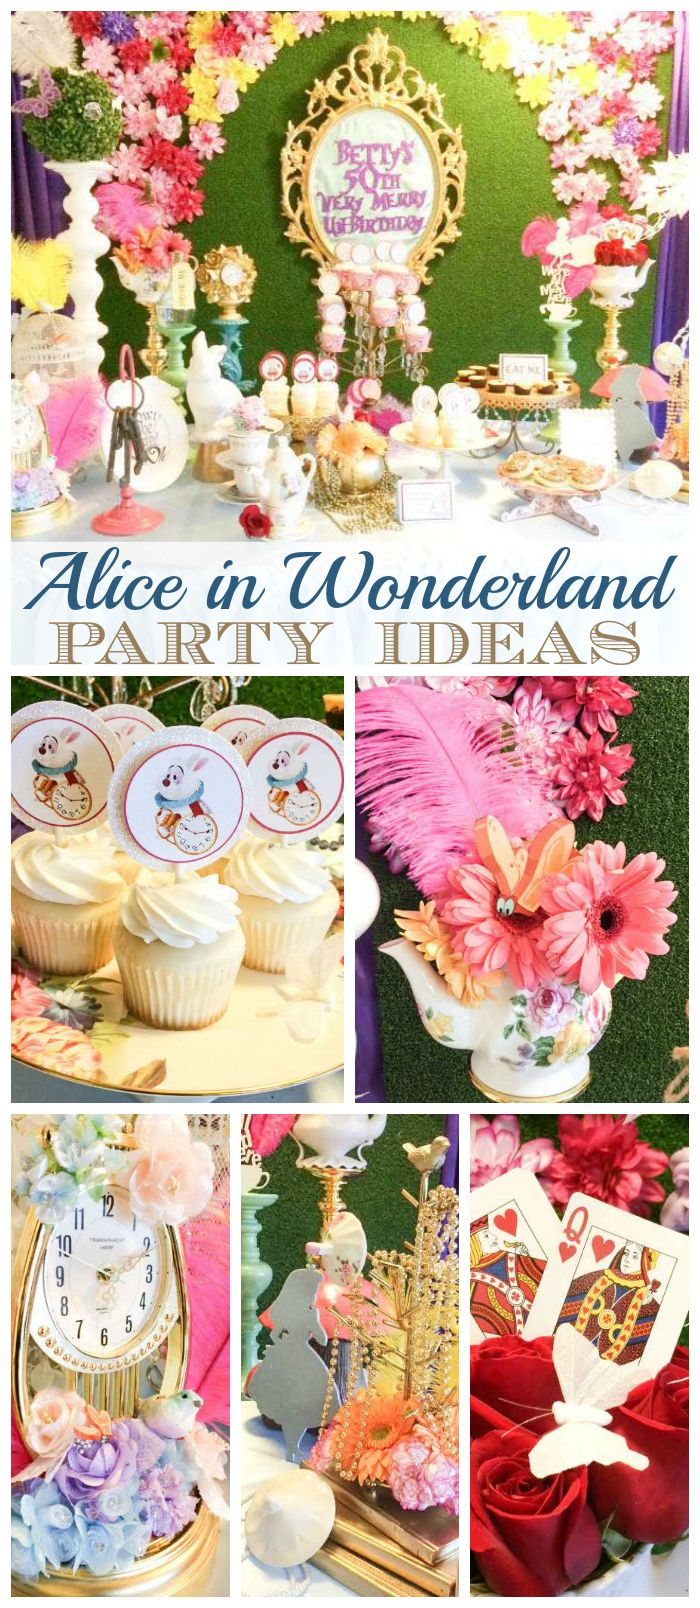 An Alice in Wonderland girl birthday party with gorgeous flowers and party decorations! See more party planning ideas at CatchMyParty.com!